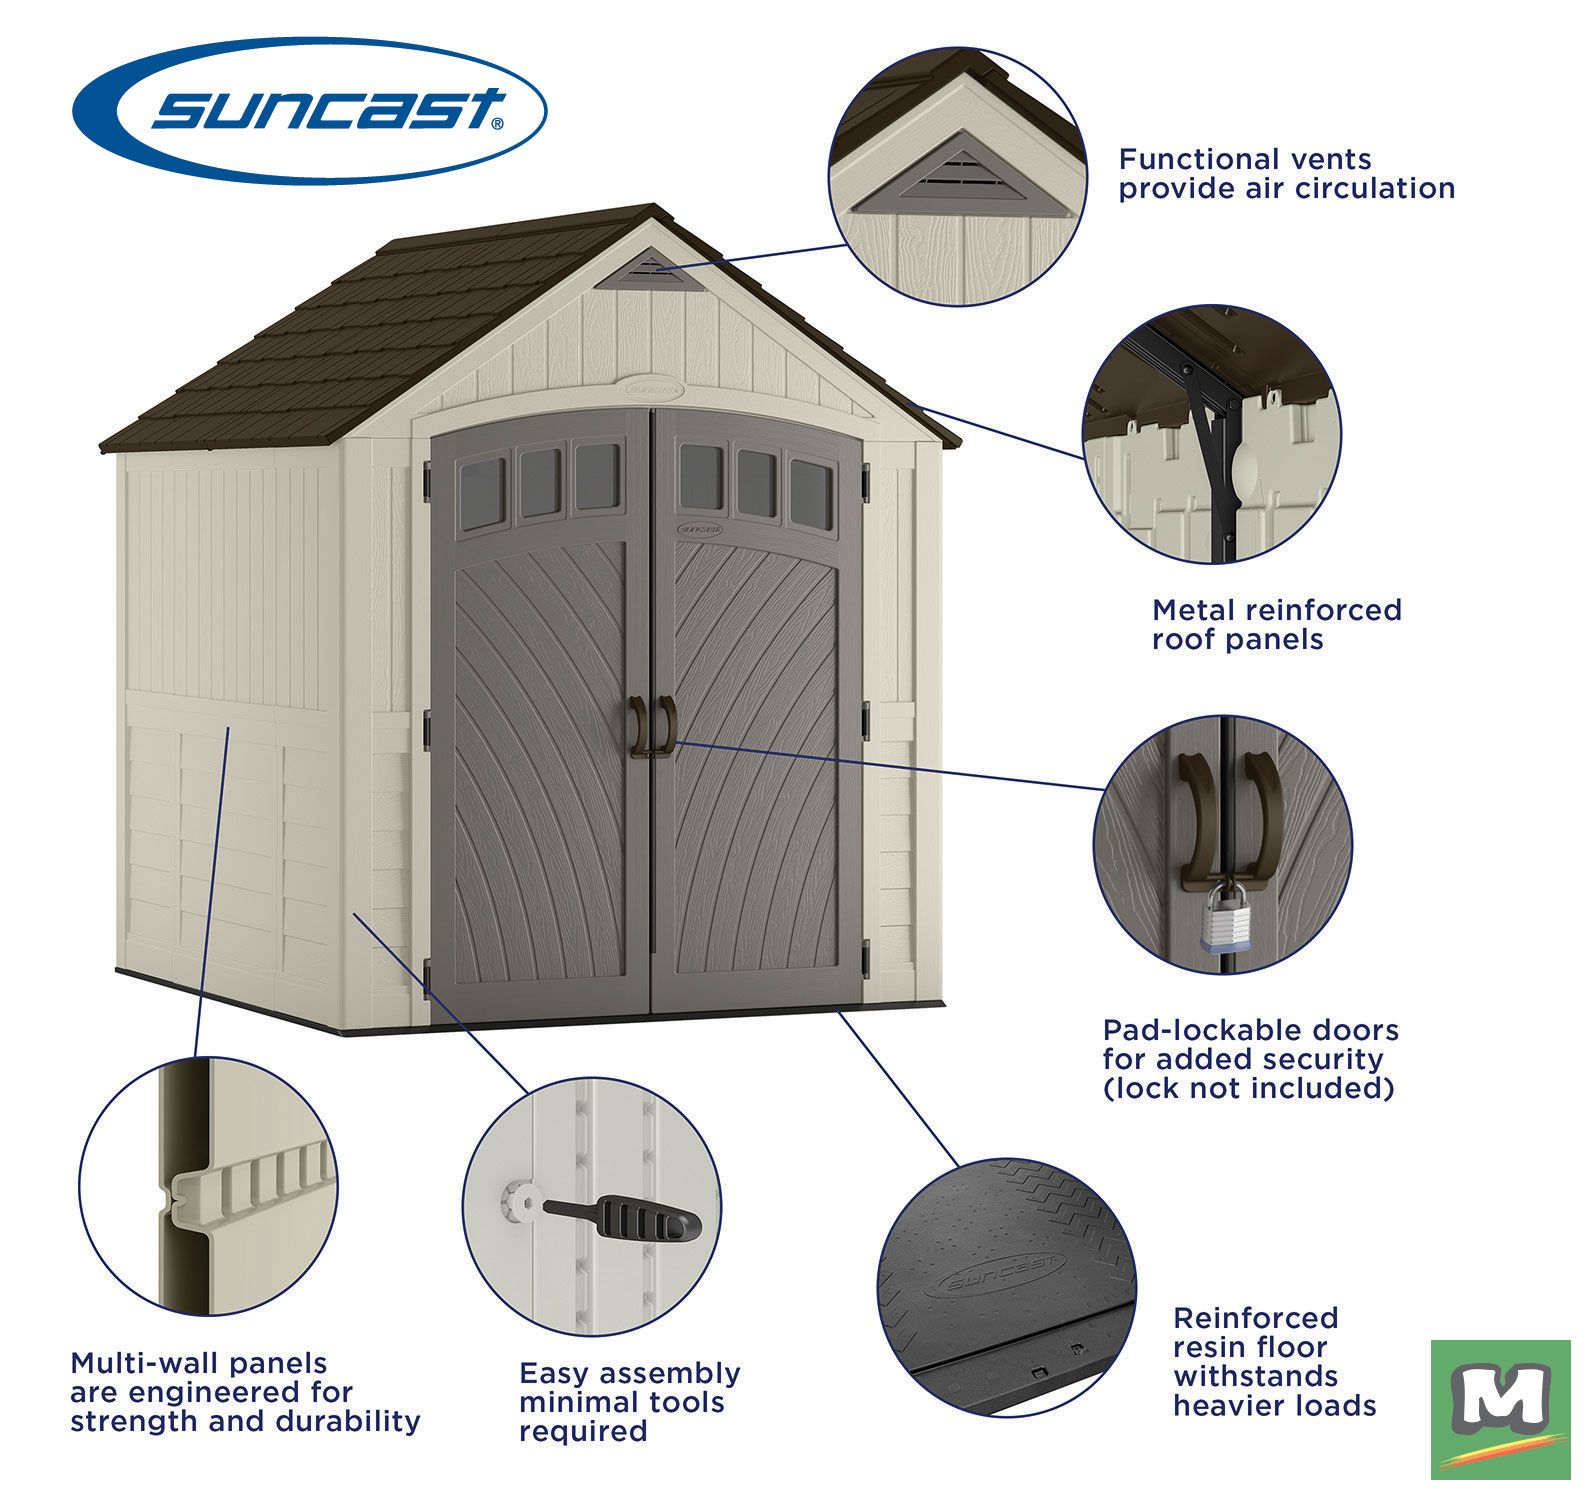 This Suncast 7x7 Covington Storage Shed Is Made Of Durable